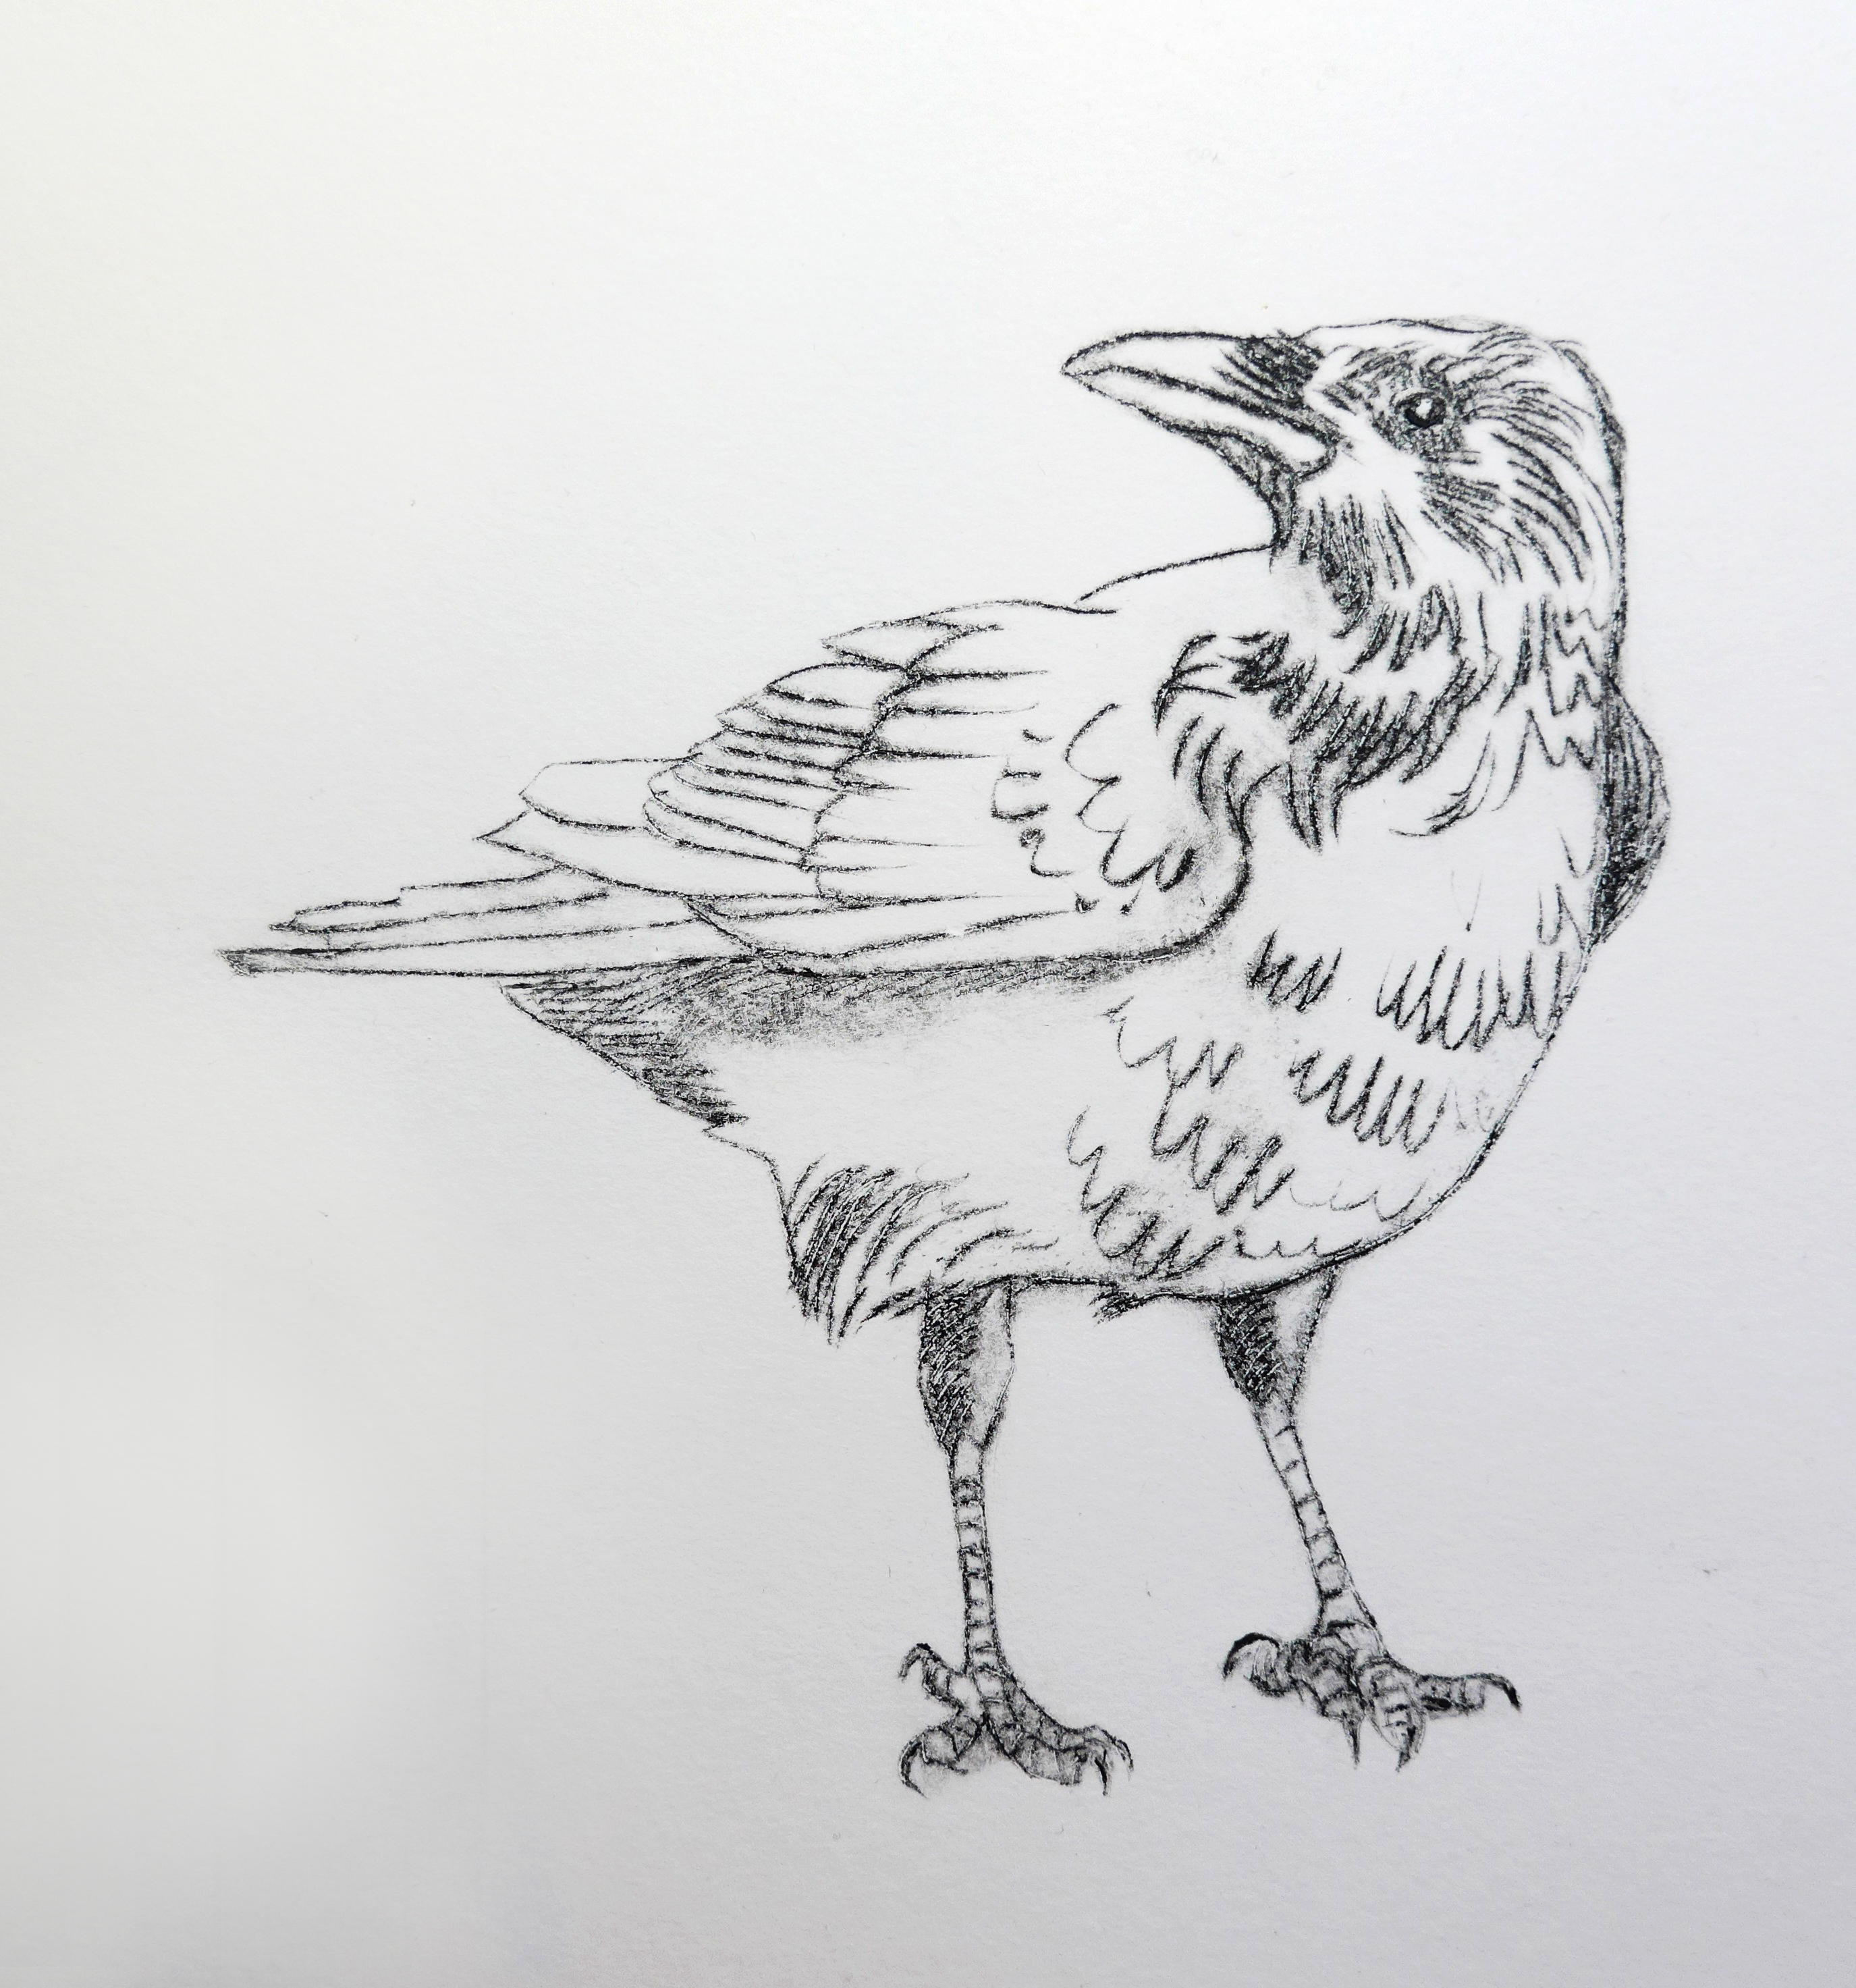 Image of a crow using intaglio by artist printmaker Diane Young